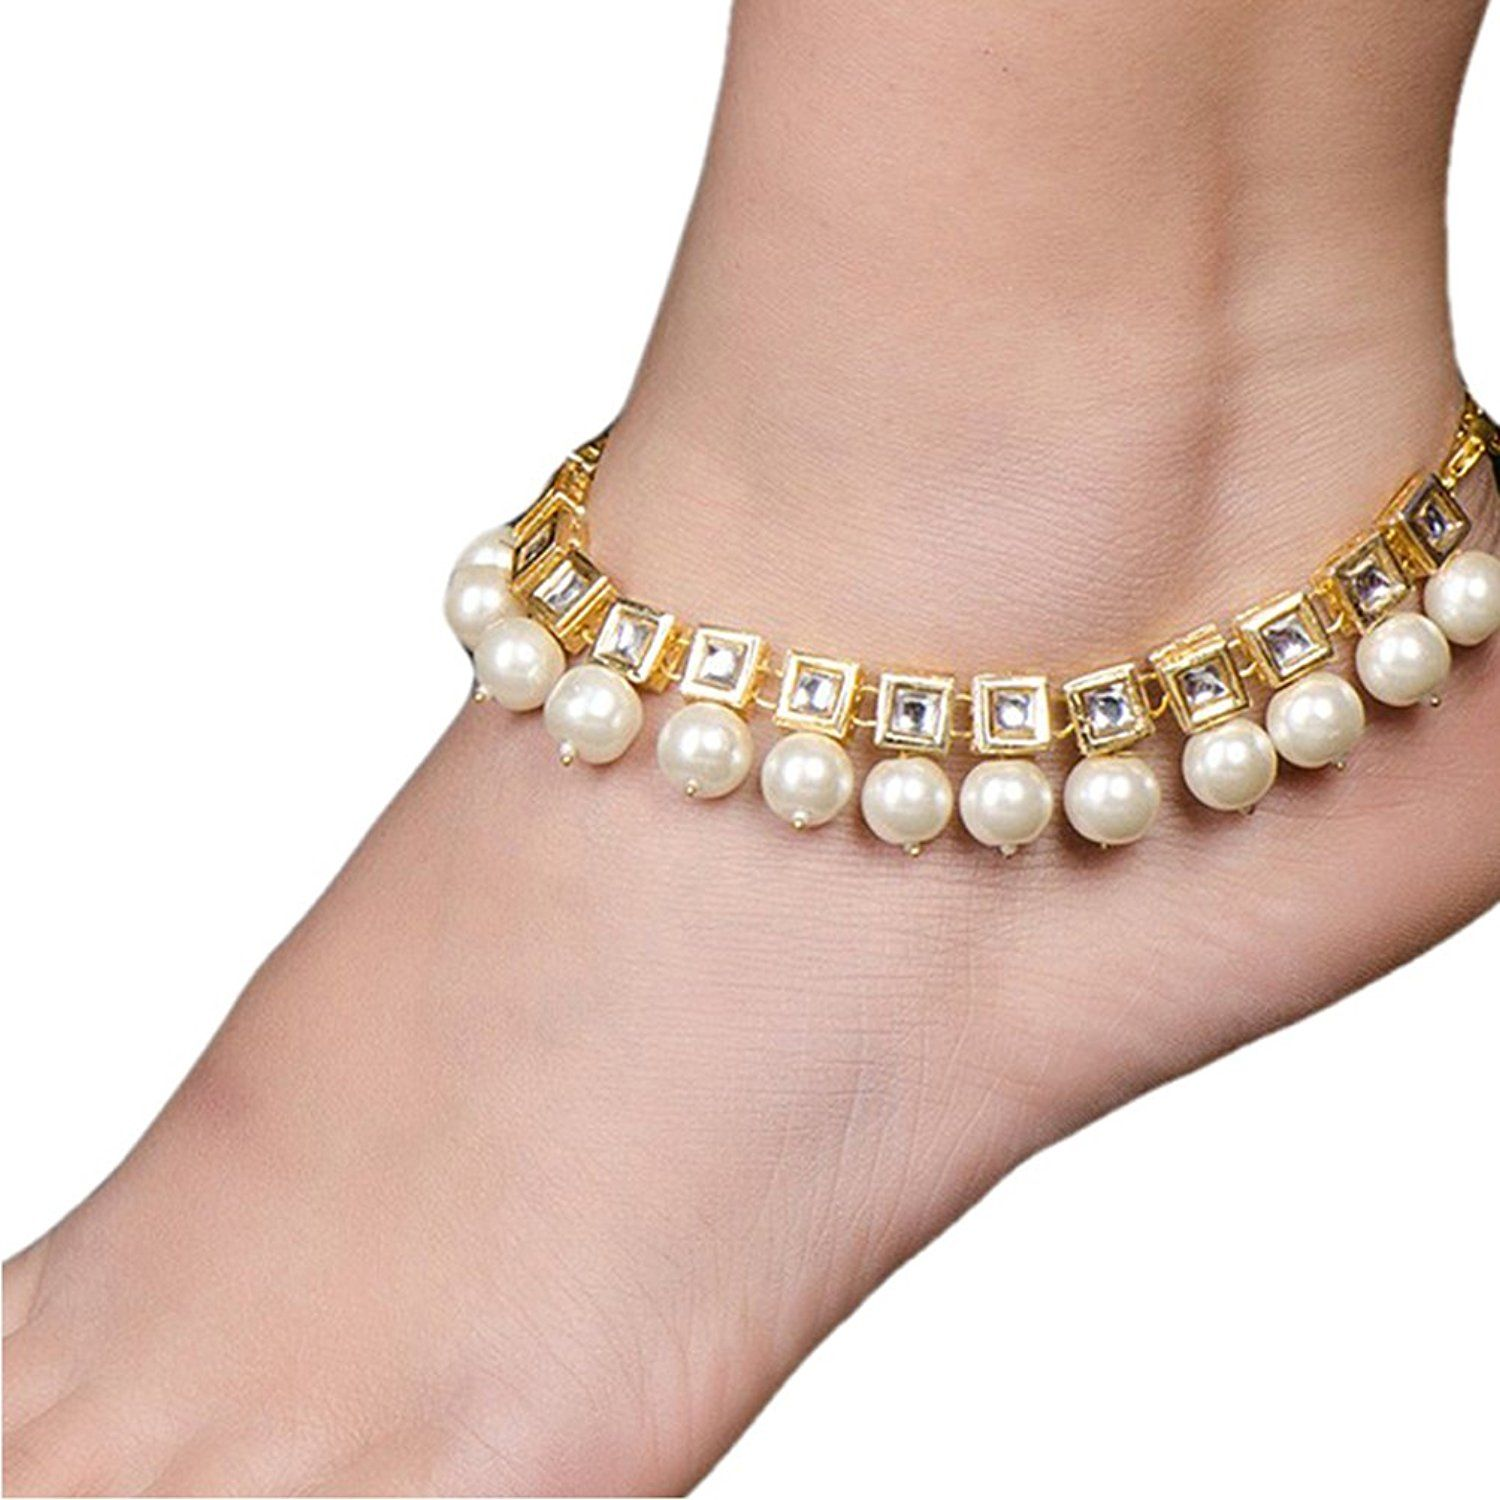 jewelry leg from in foot sexy crystal pie barefoot fashion anklet wedding scorpion bracelet item female anklets boho chain sandals beach